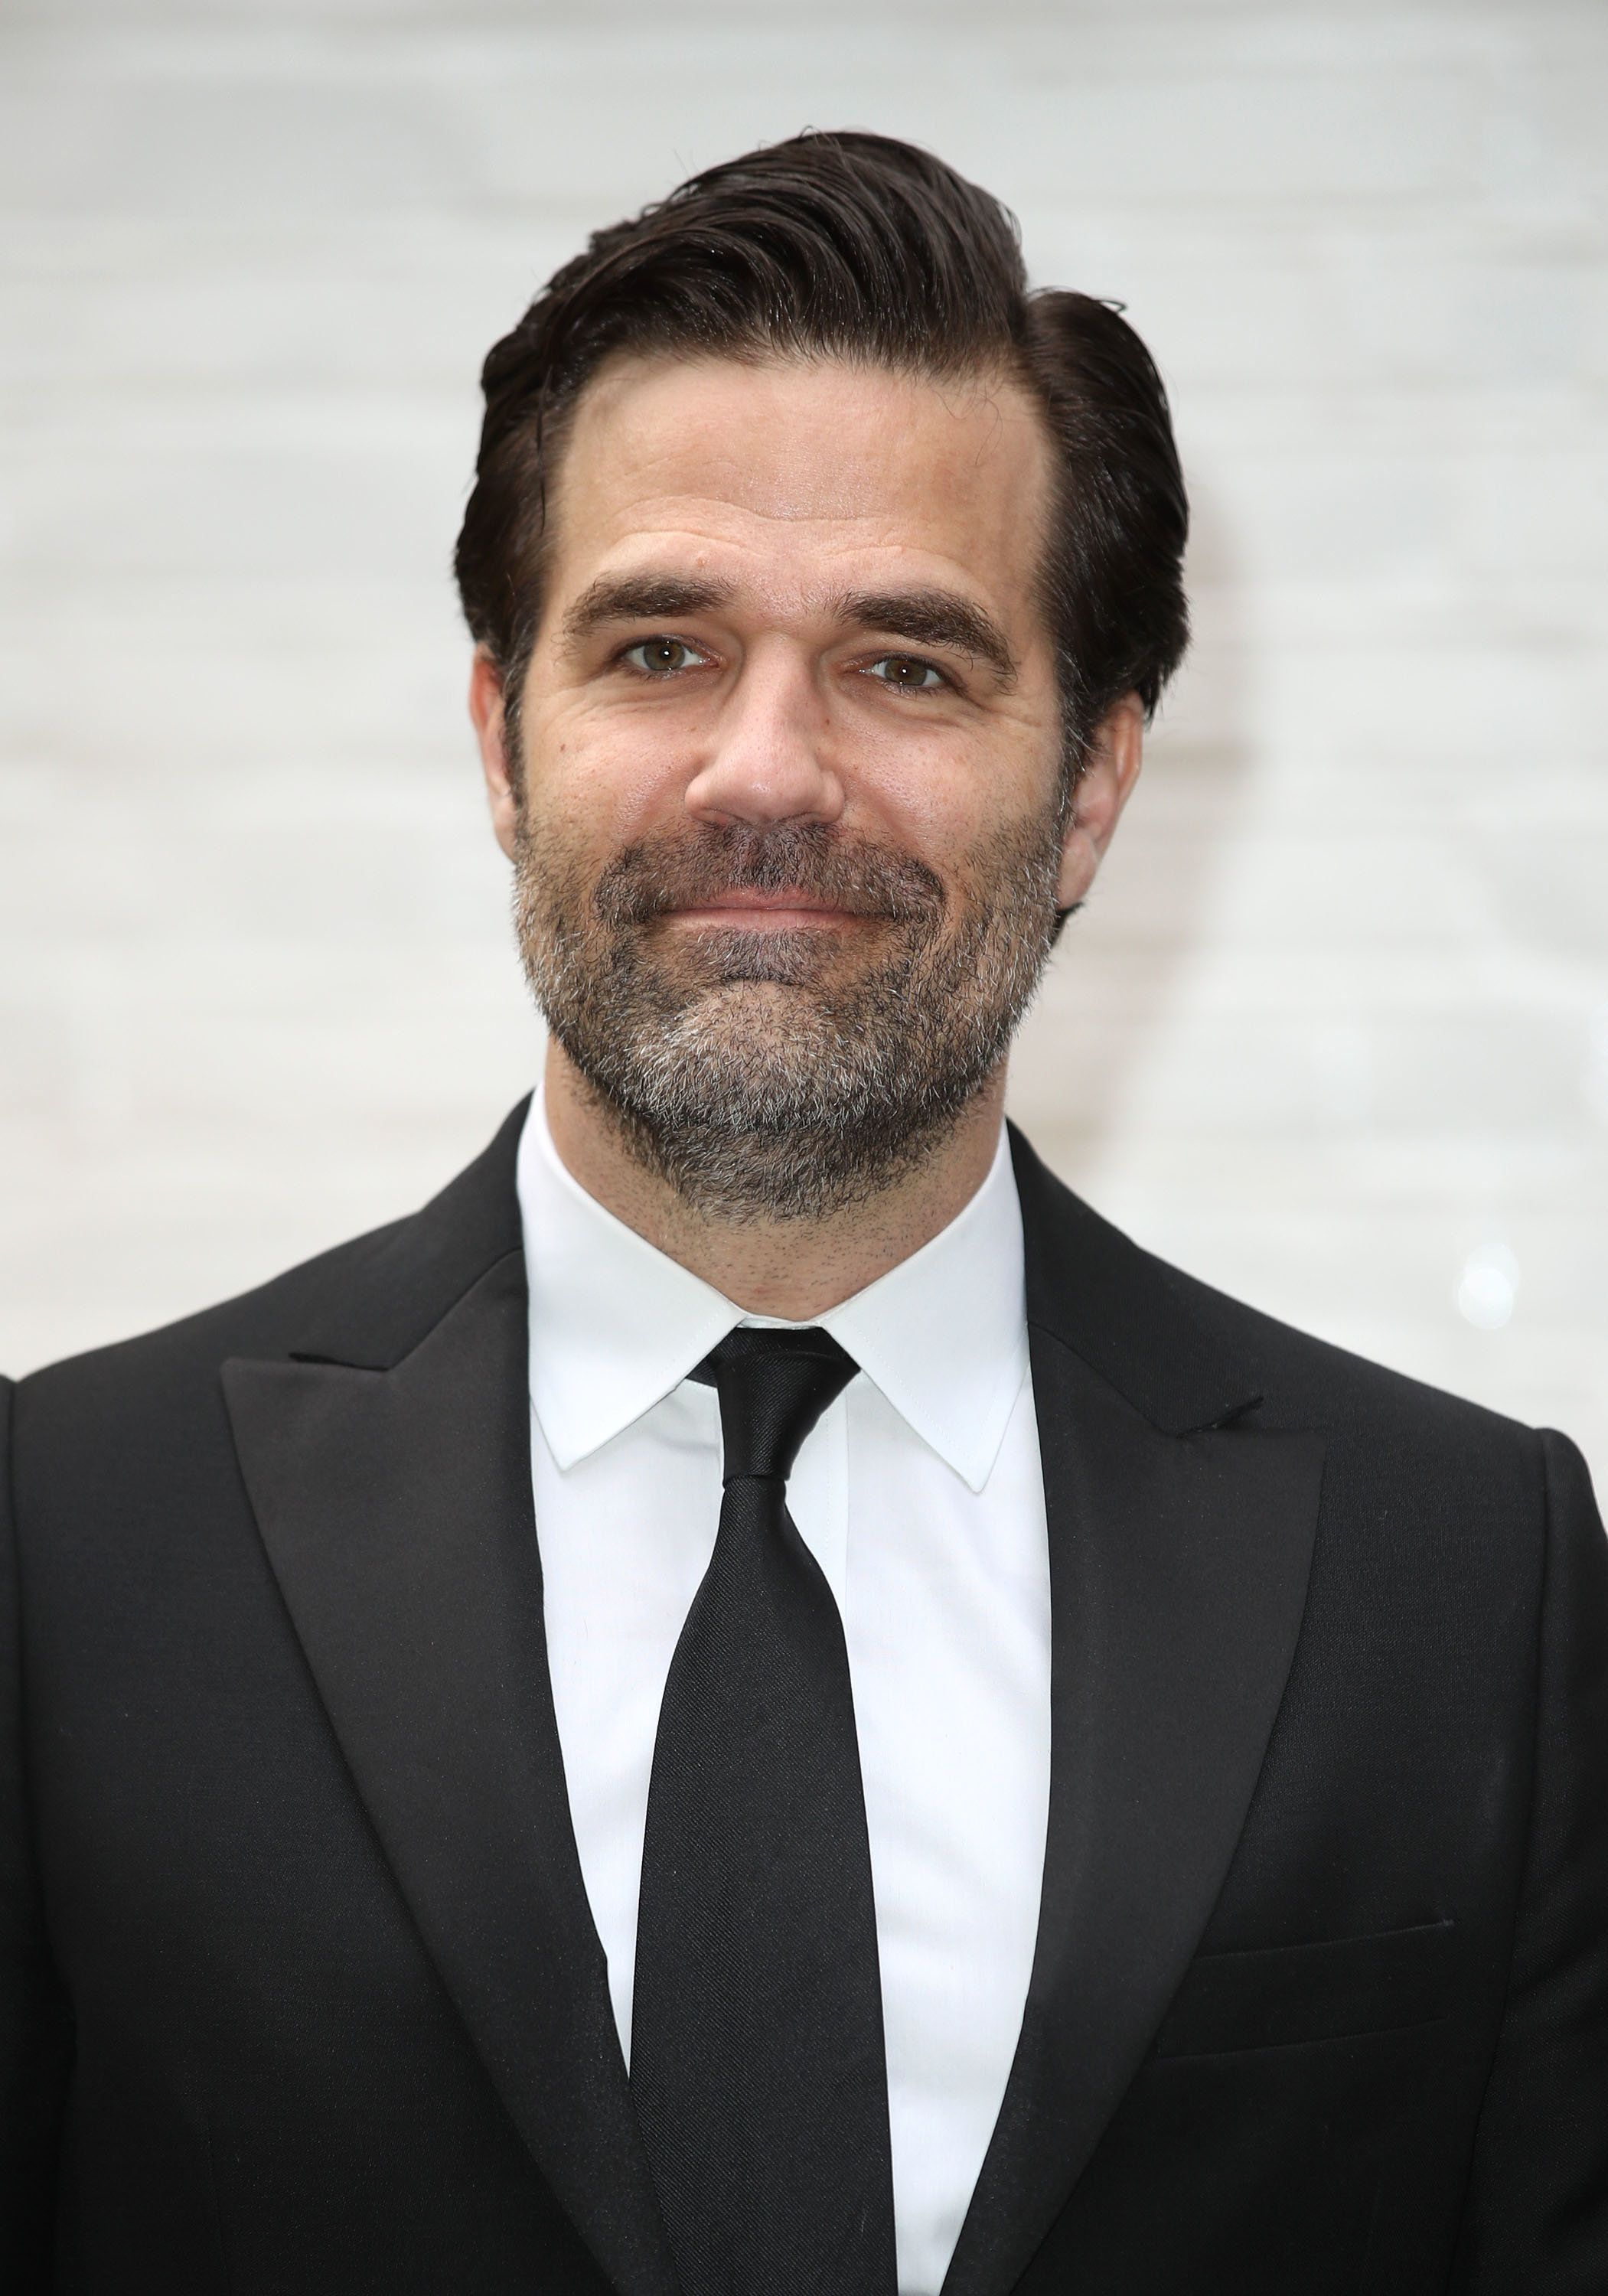 HEARTBREAKING: Rob Delaney Pens Emotional Essay For Parents Of Sick Children After Son Henry's